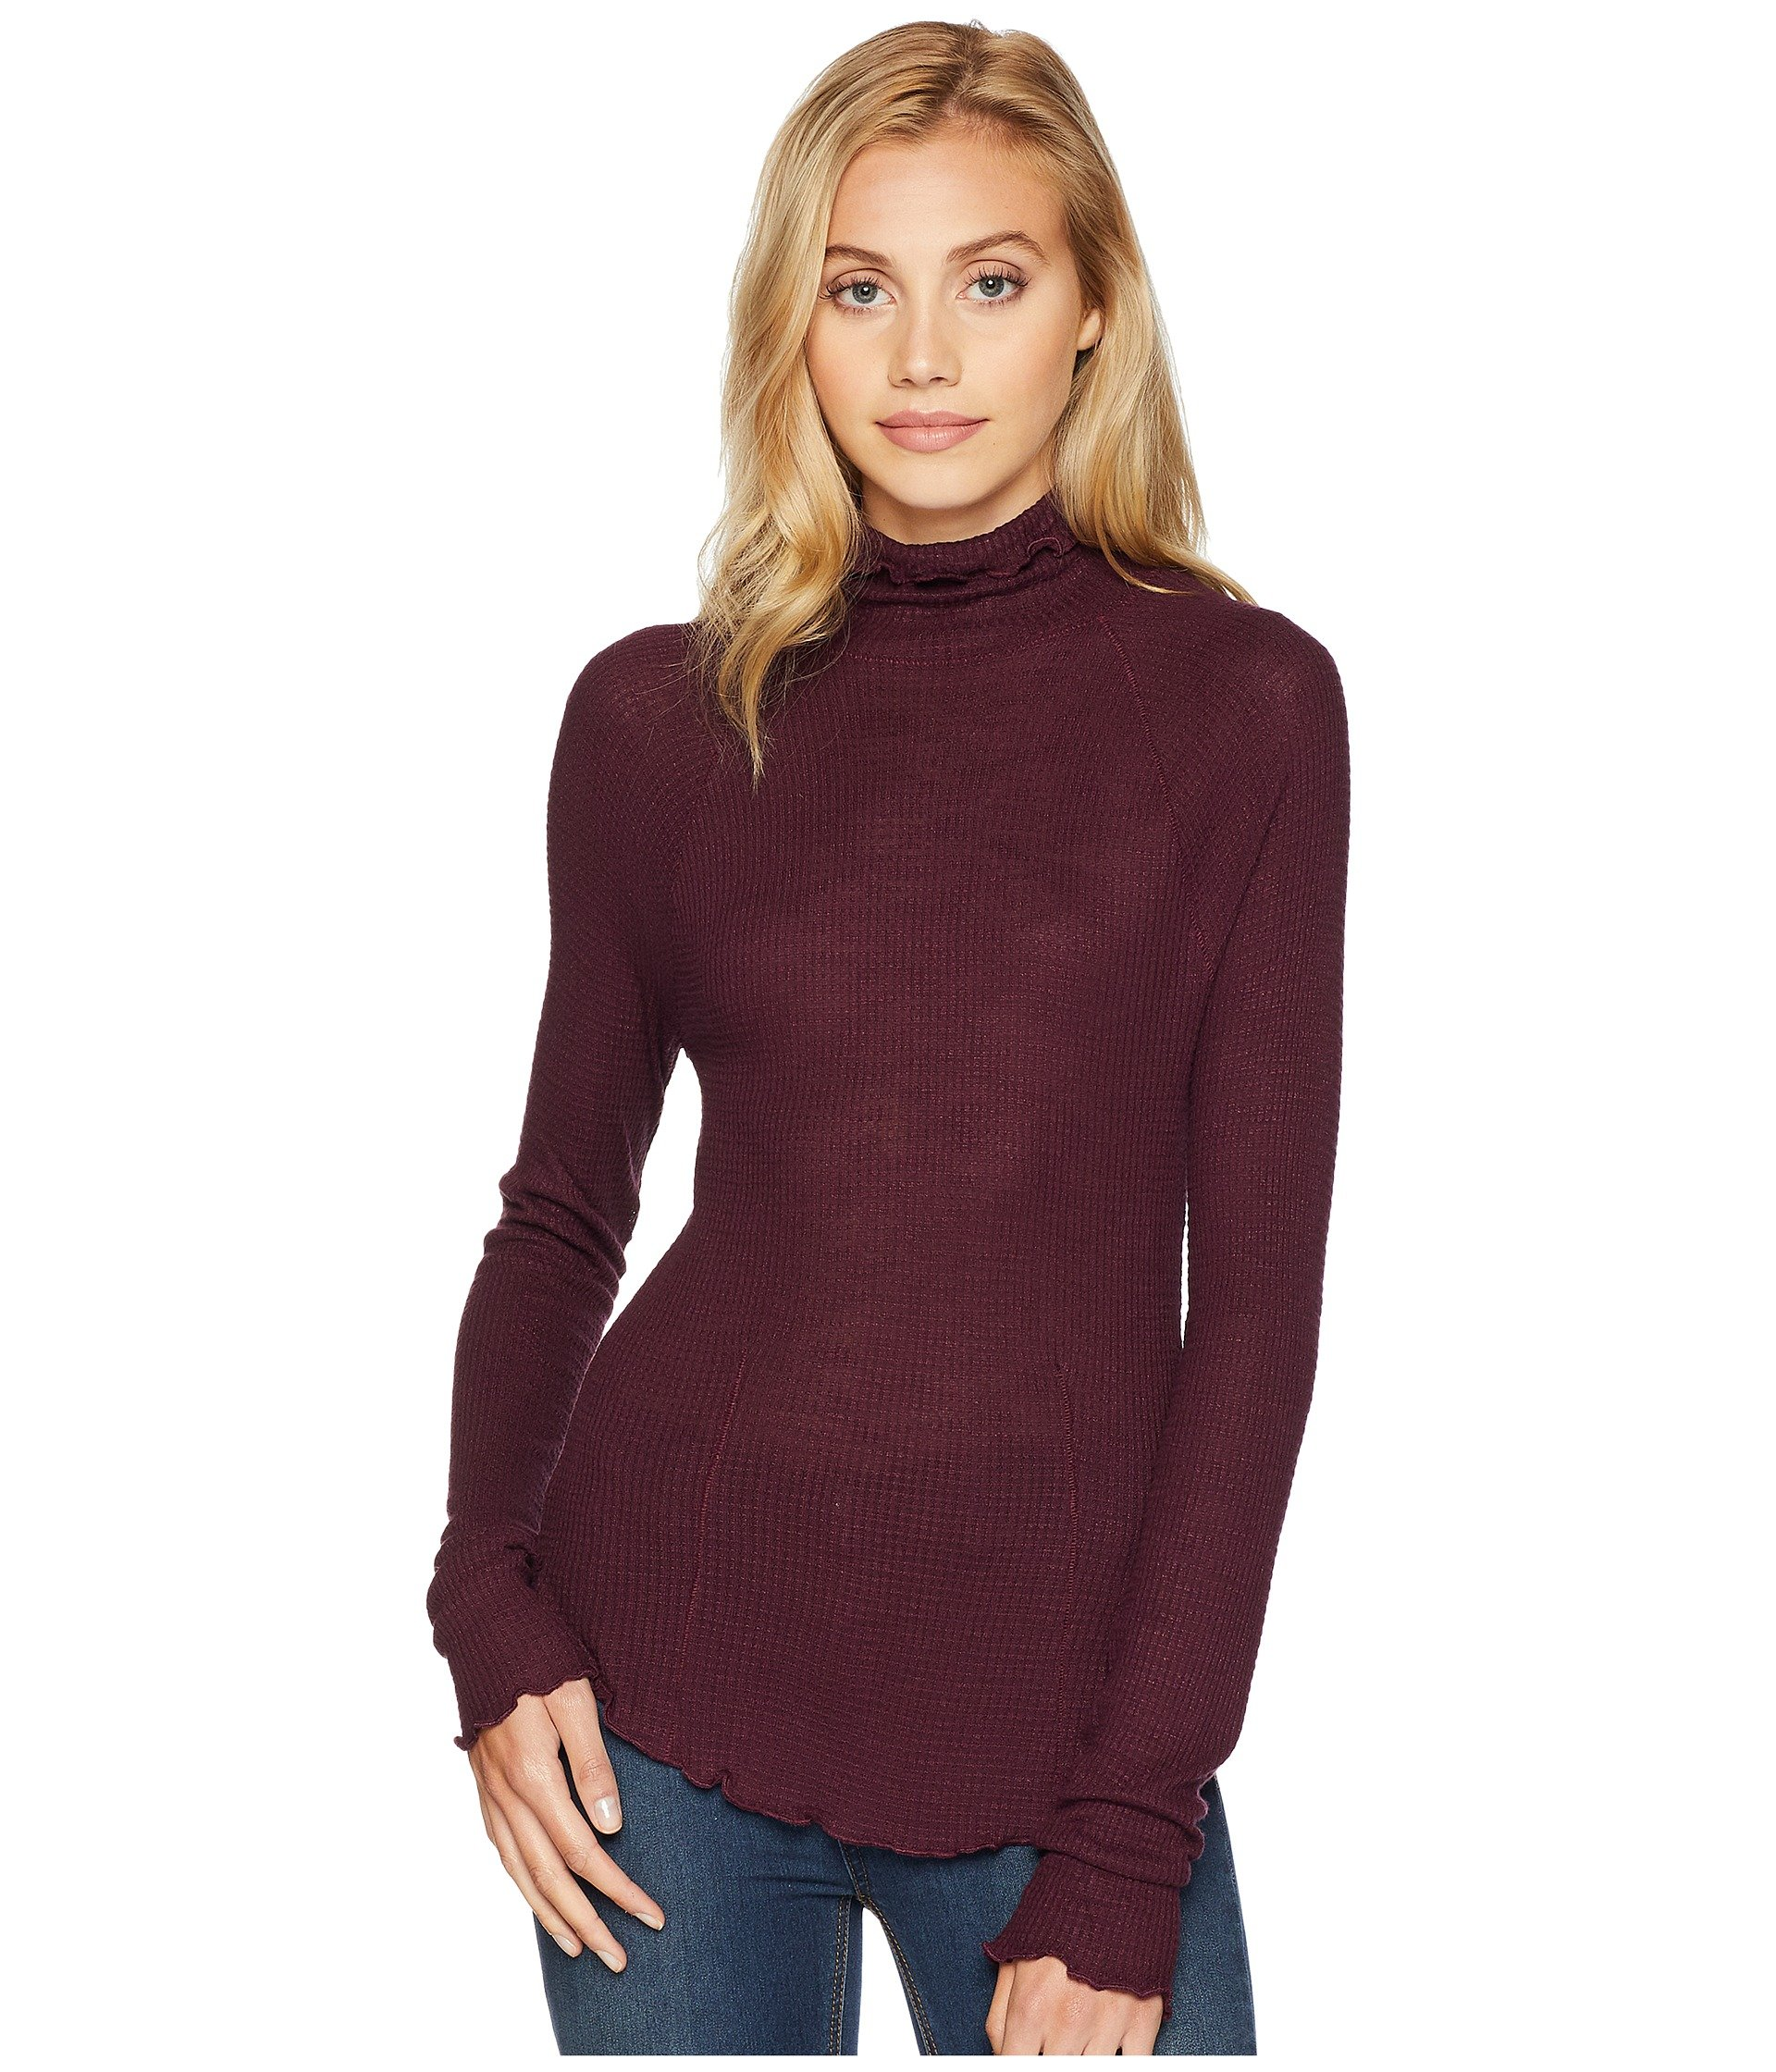 Free Plum Make It Easy People Thermal RwR0qUx